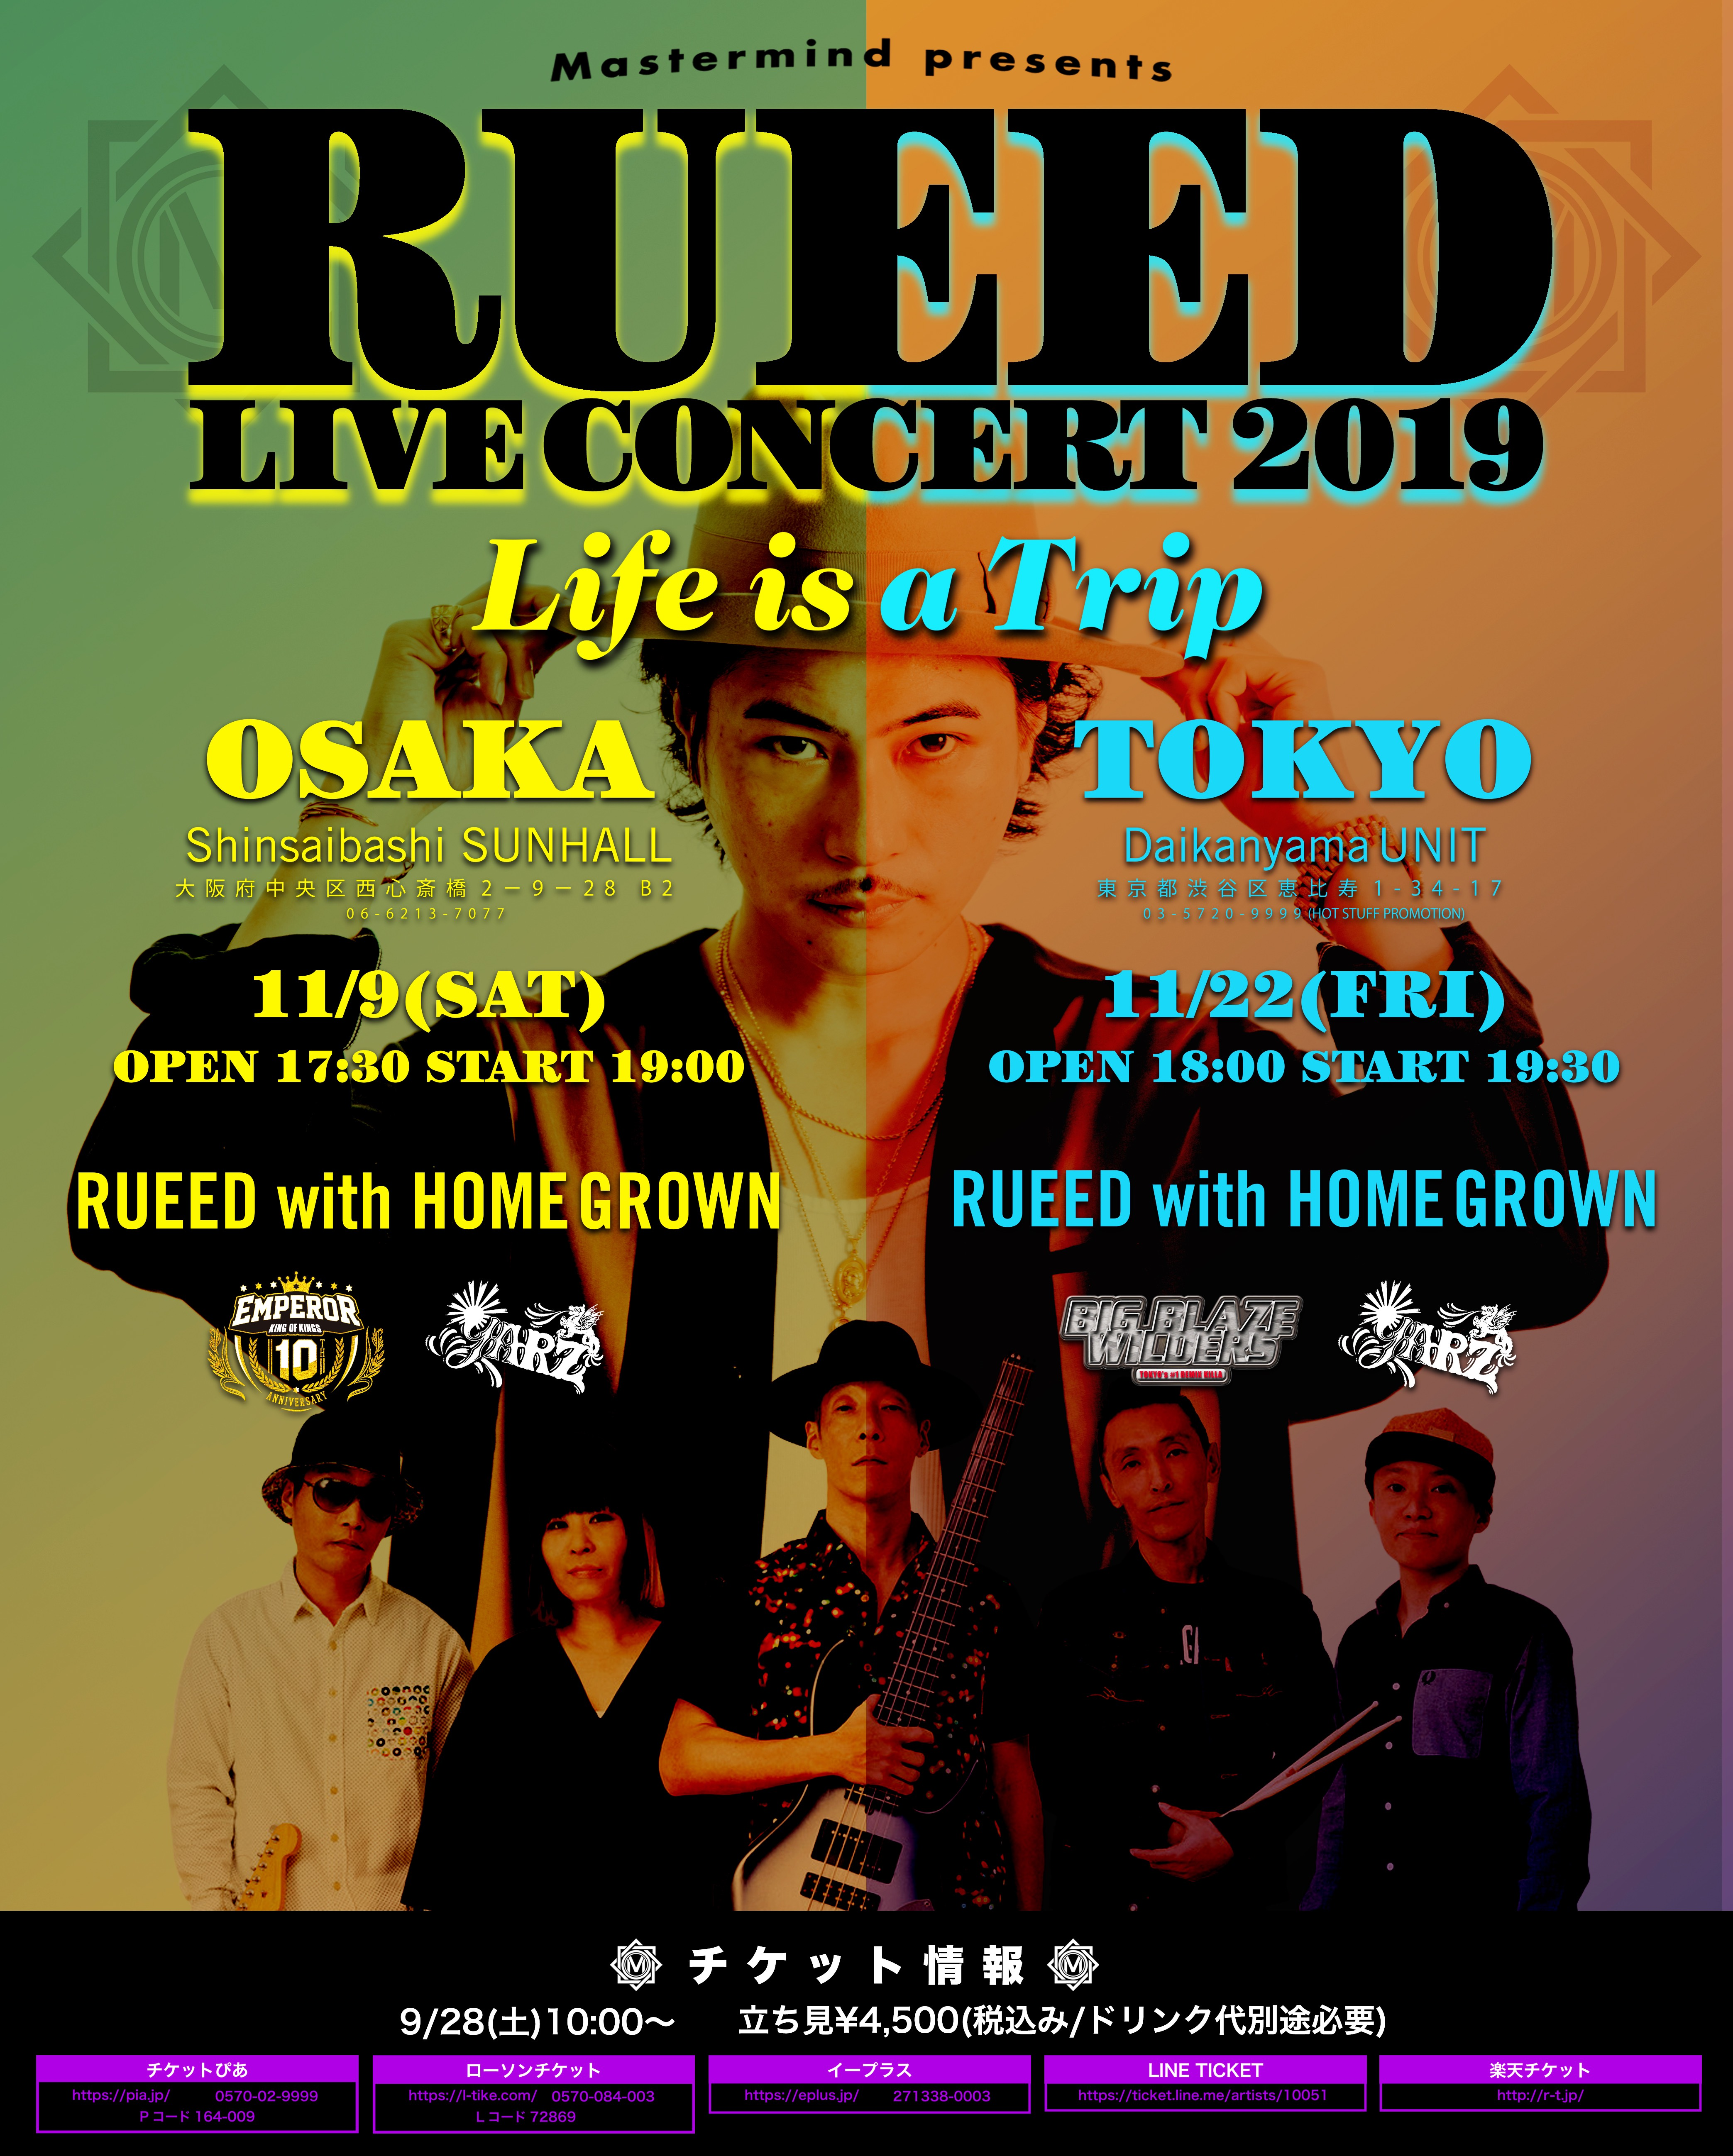 Rueed Live Concert 2019 ~Life is a Trip~